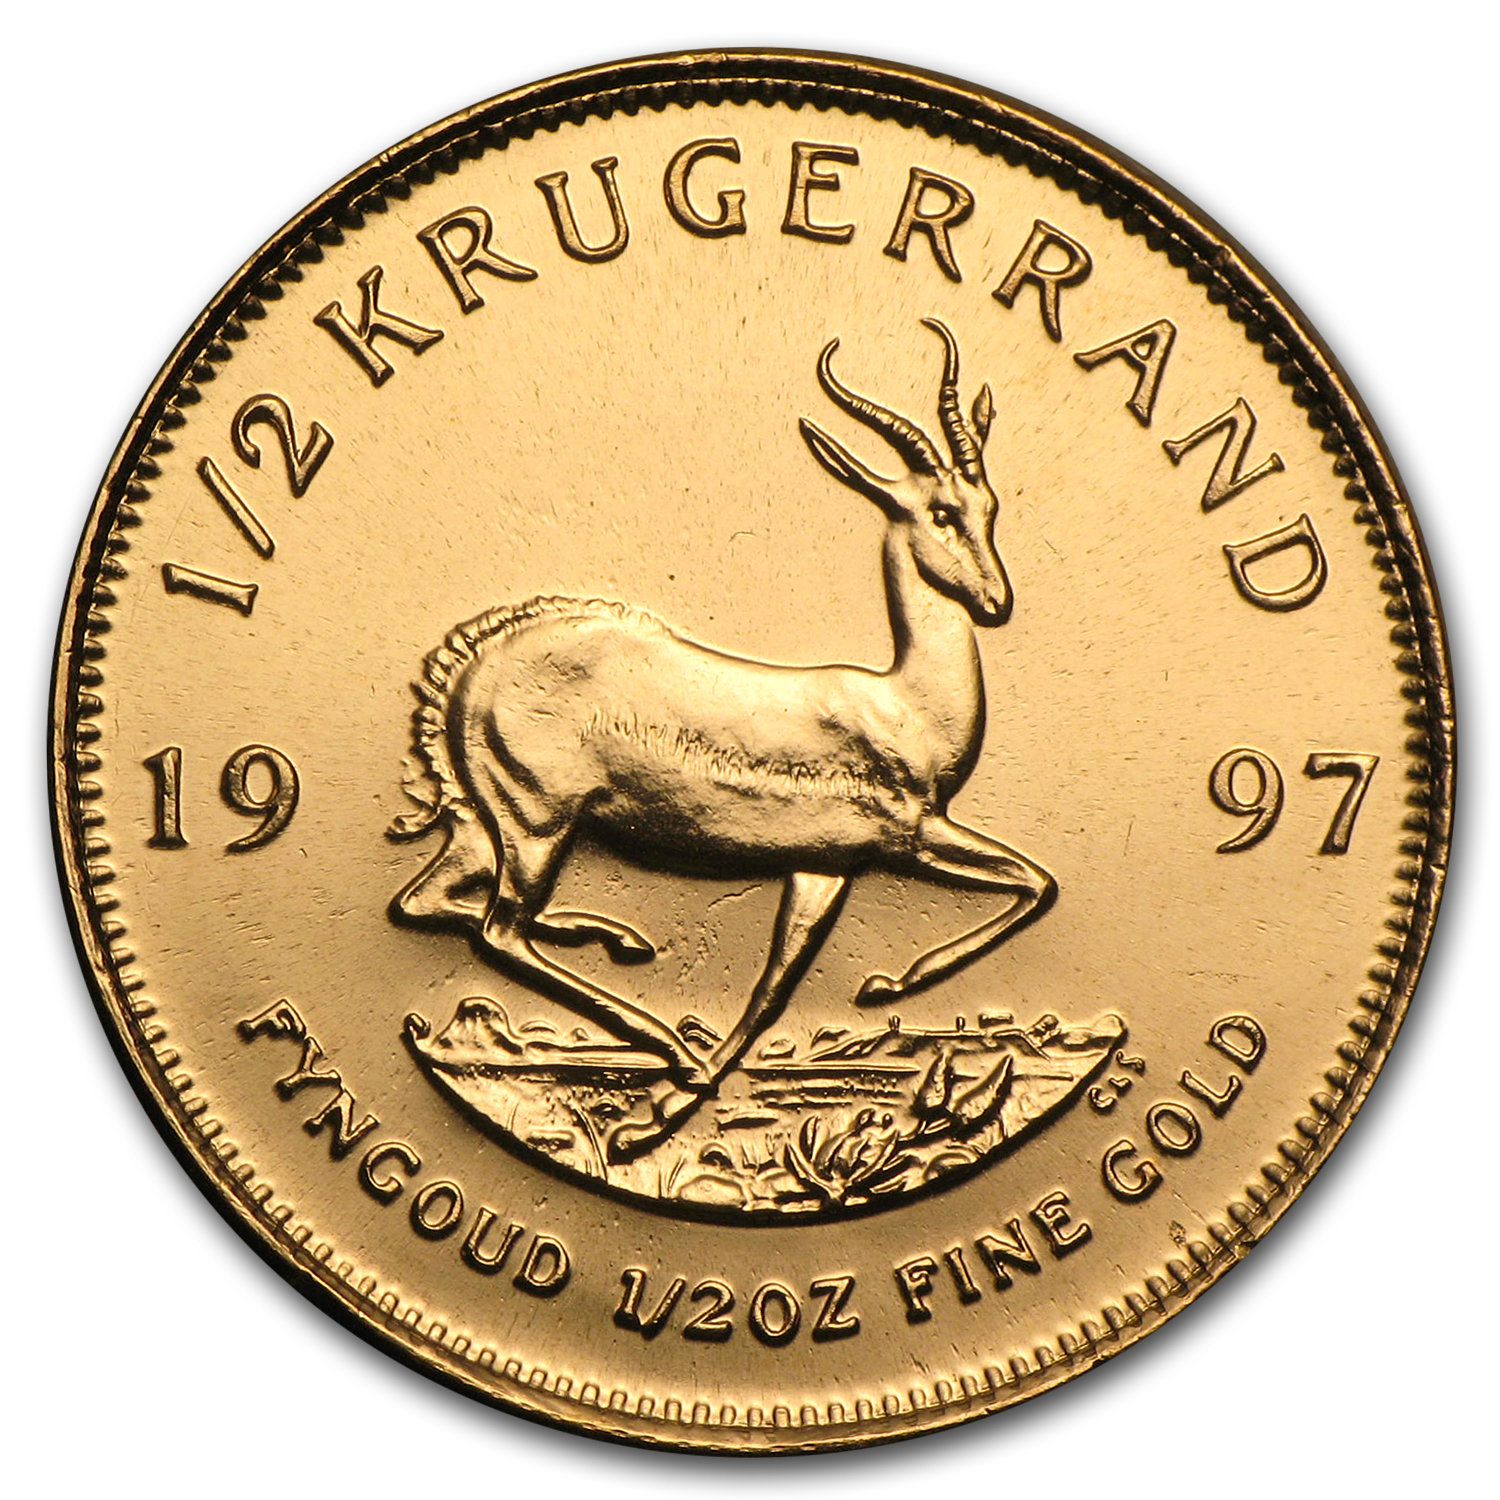 1997 South Africa 1/2 oz Gold Krugerrand